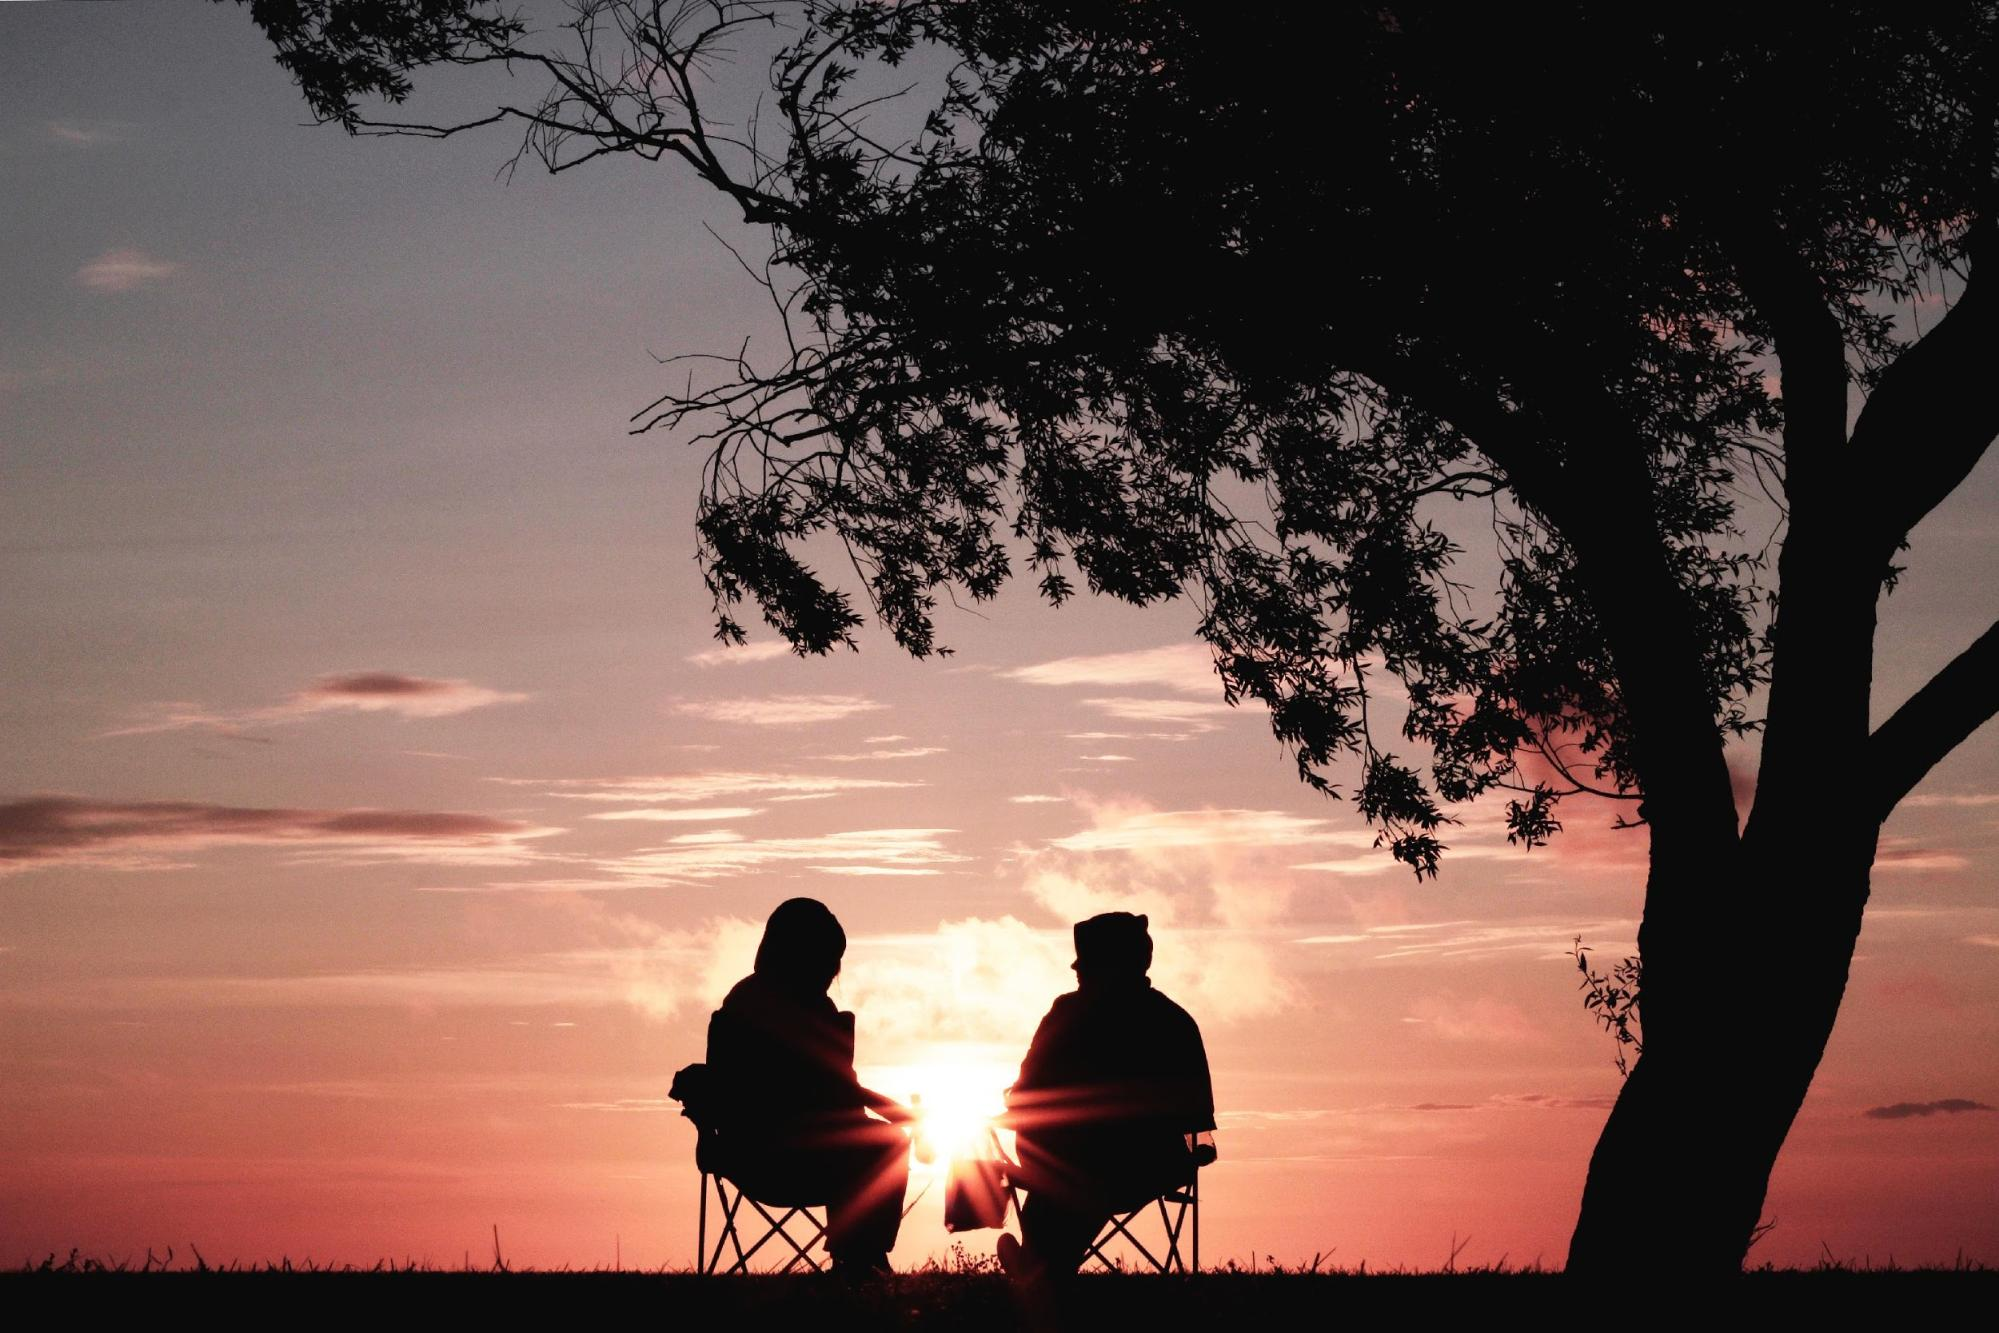 2 people relaxing without social media or phones at sunset